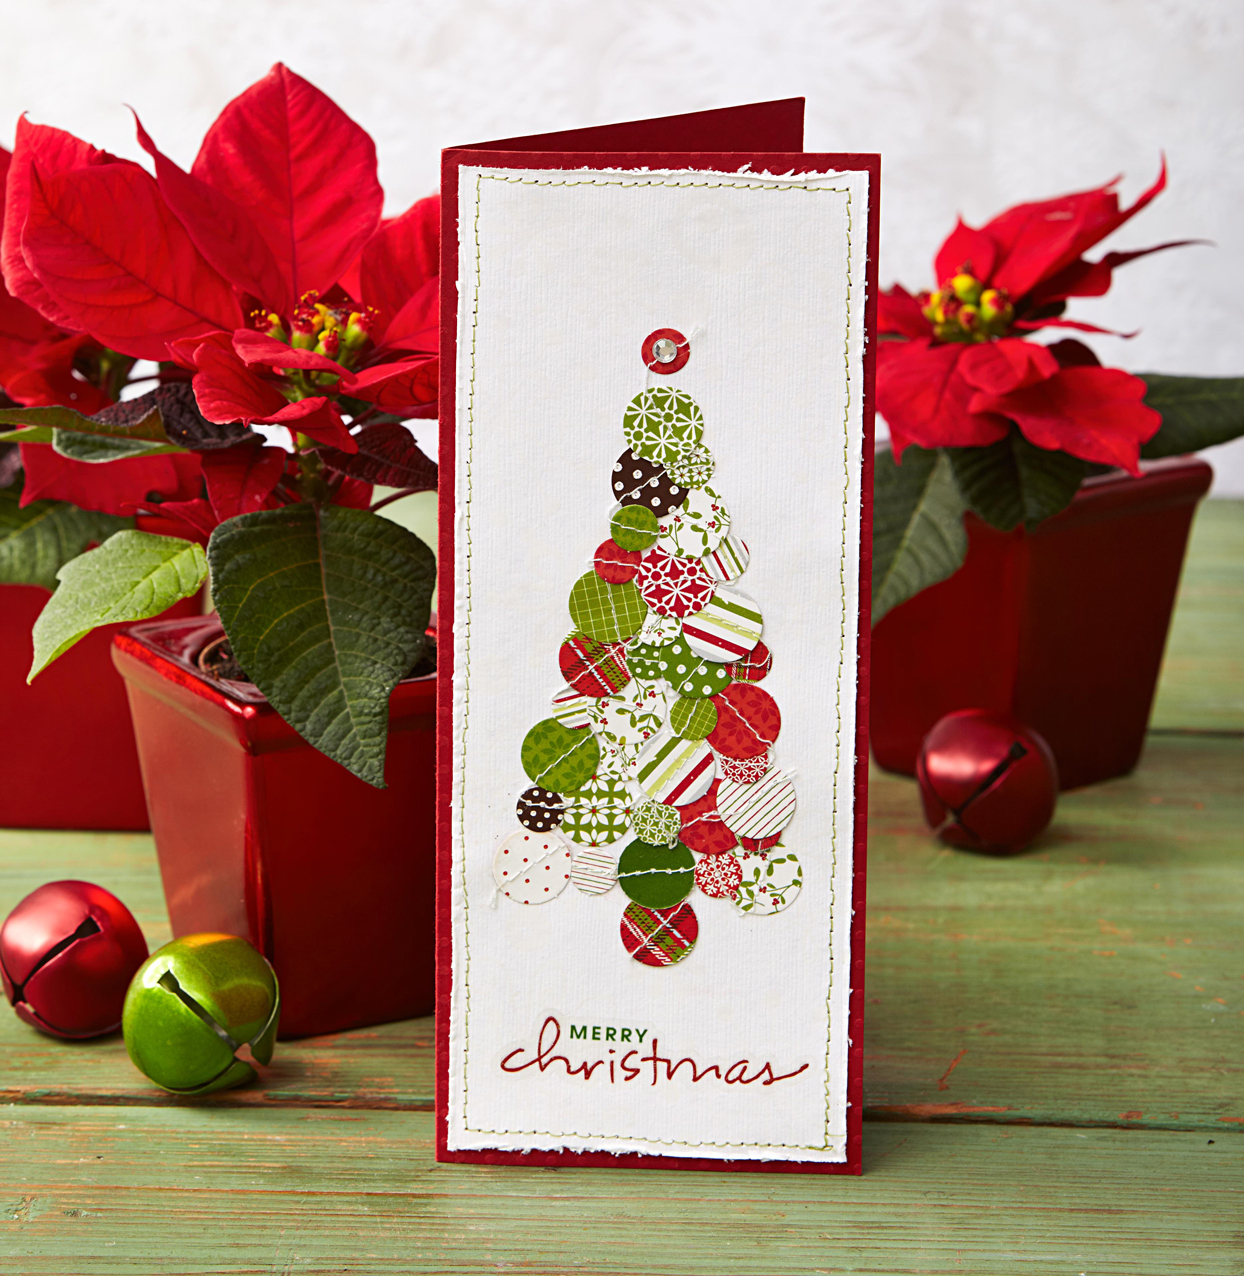 Decorative tree Christmas card